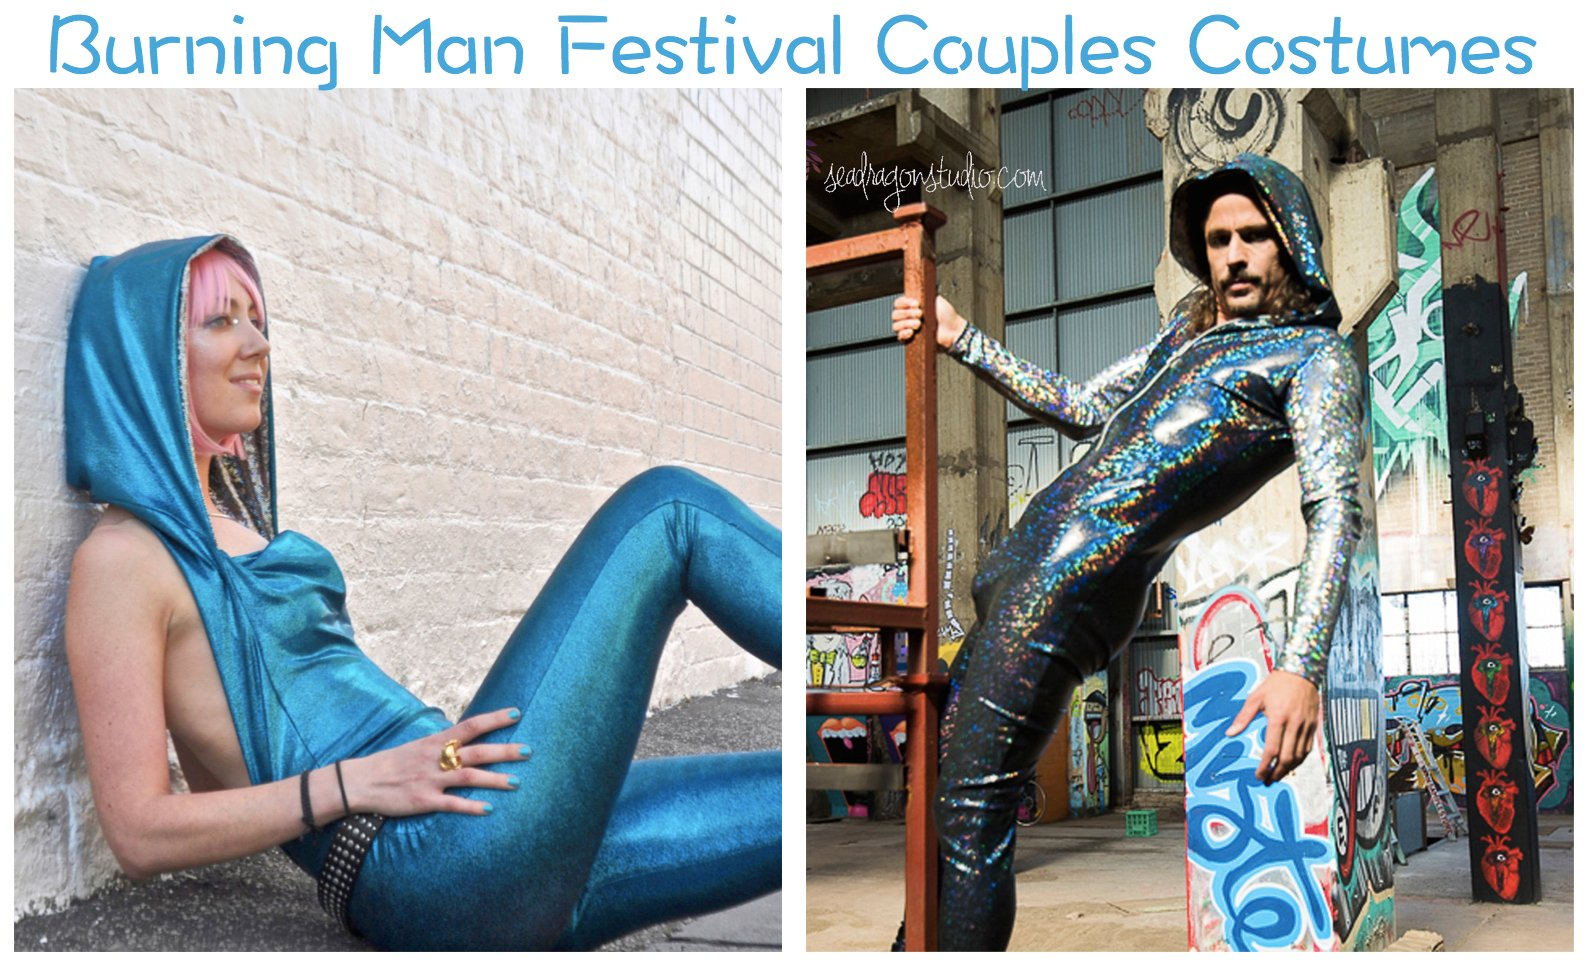 Burning Man & Festival Couples Costumes